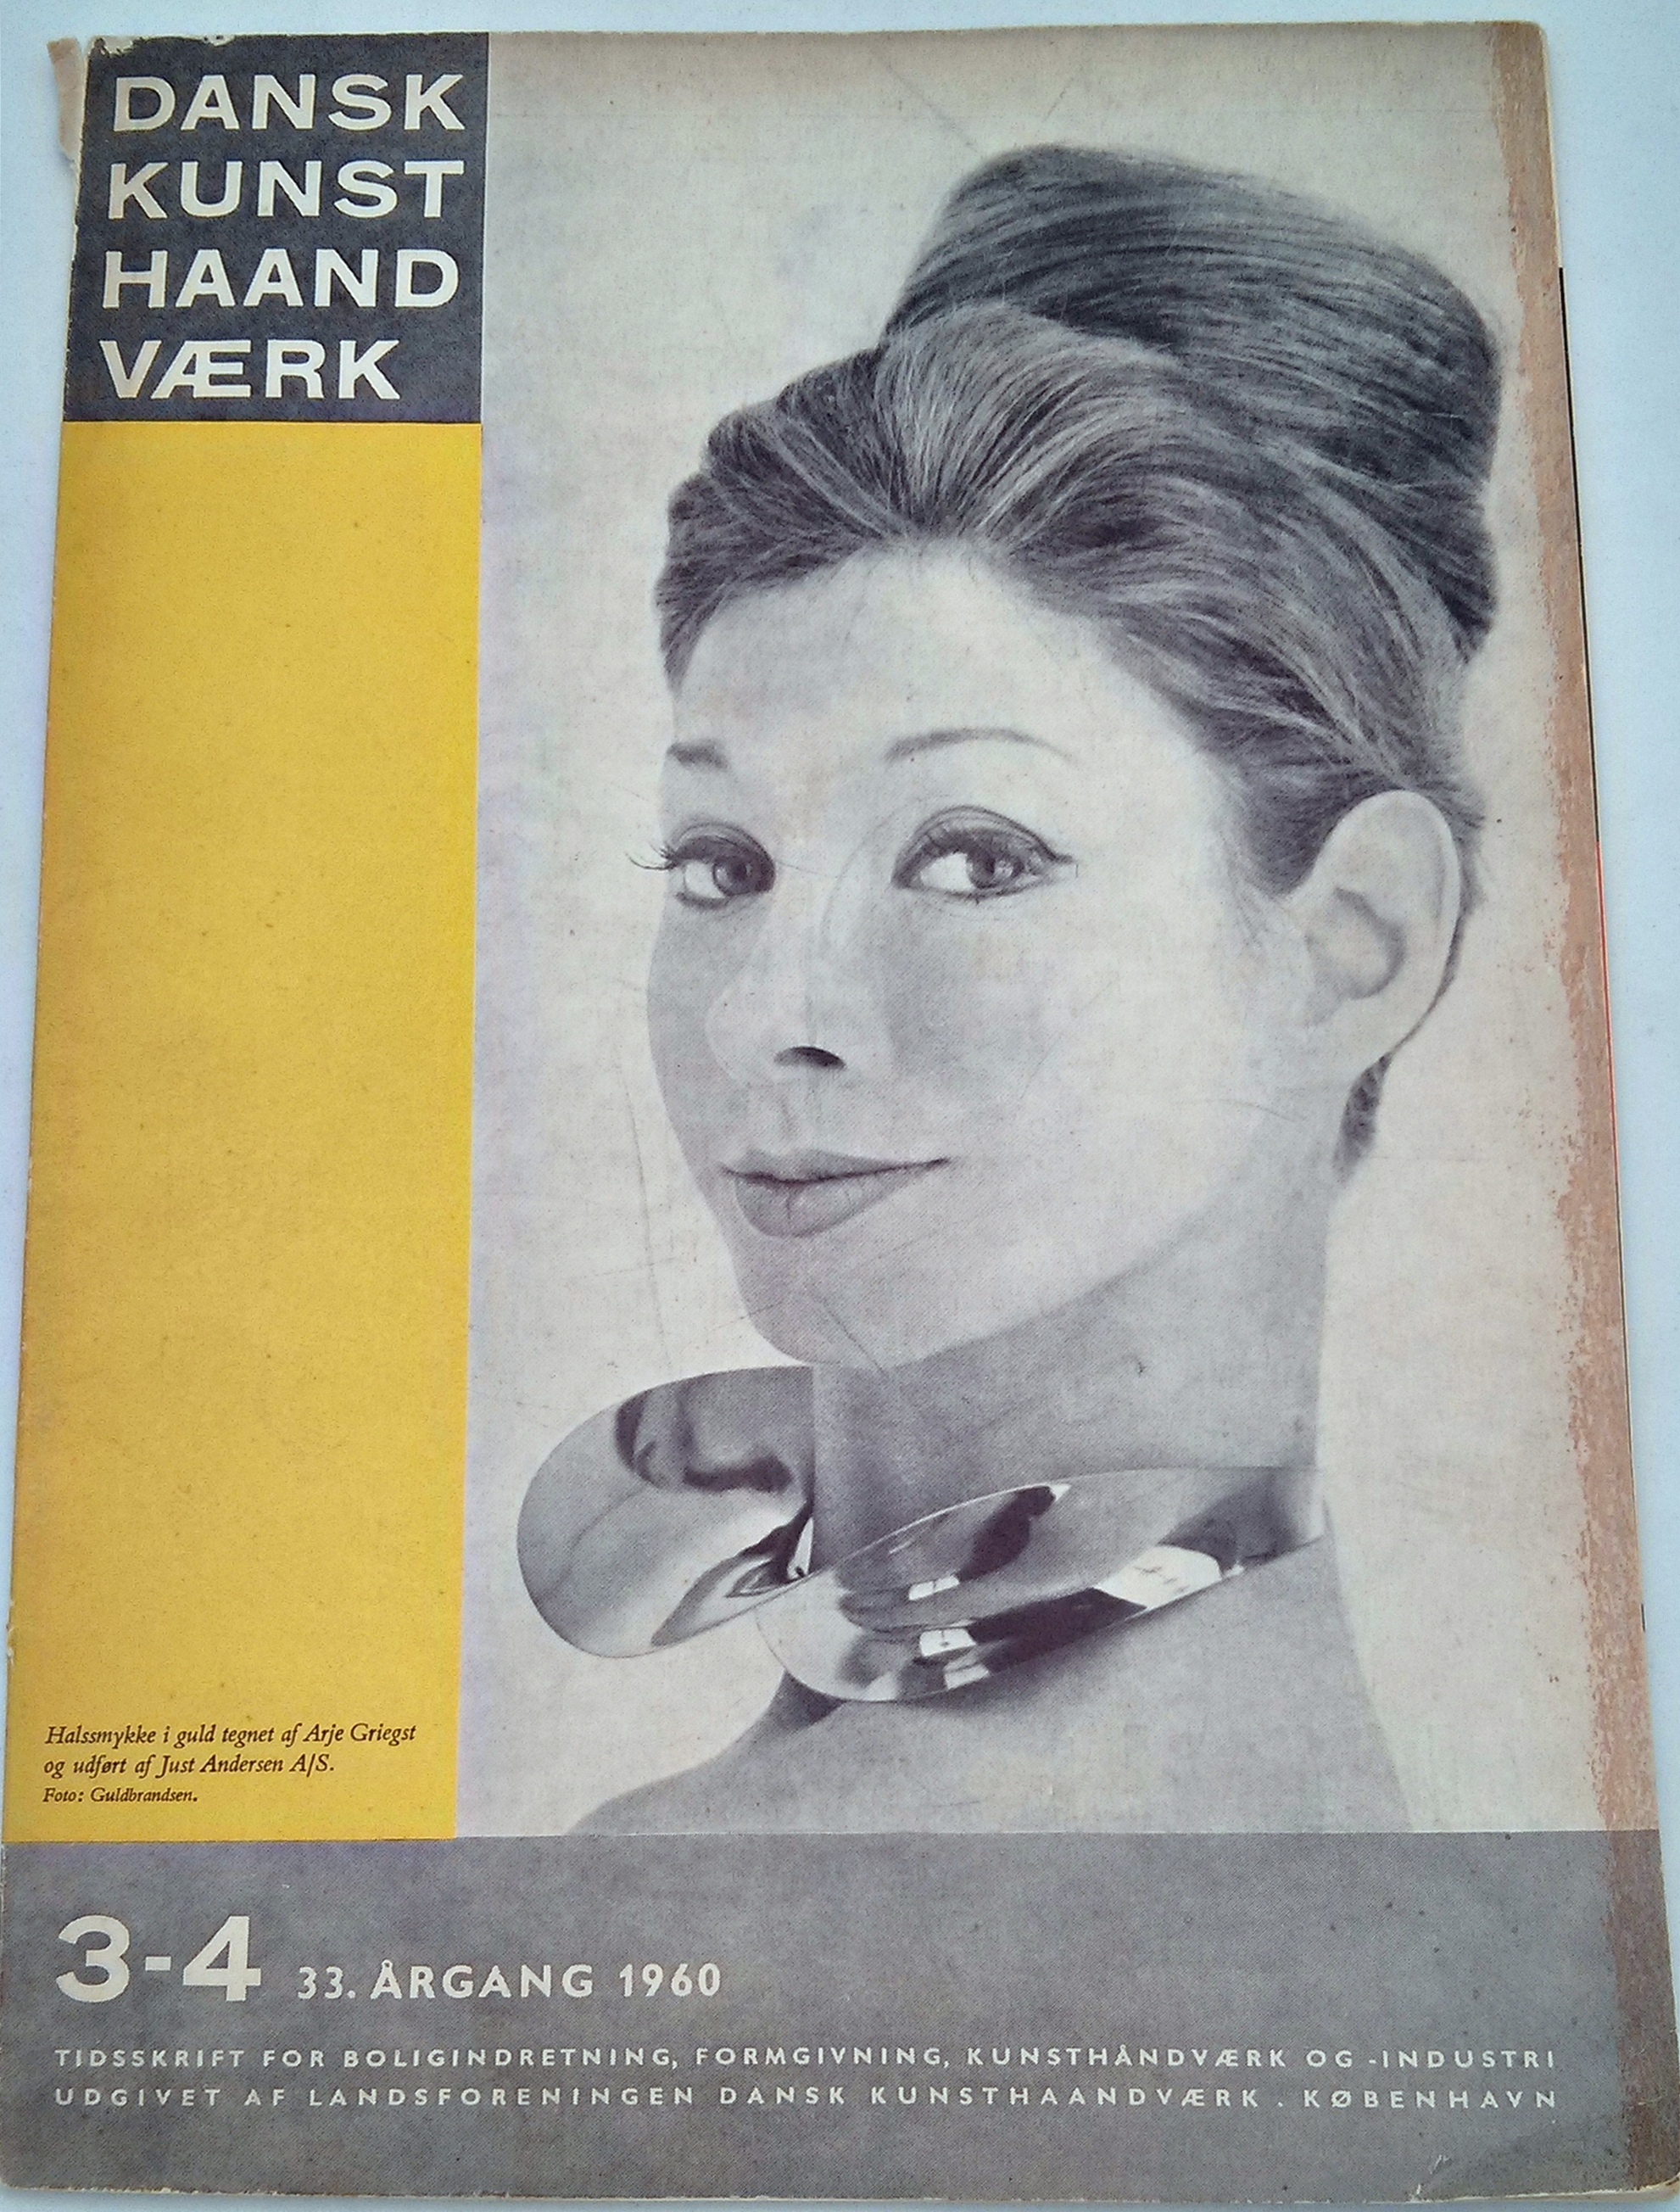 """""""Dansk Kunst Haandvaerk"""" - Danish Crafts  The following excerpts come from a 1960 issue of the publication. The model on the cover is wearing a beautiful neckband designed by Arje Griegst for Just Anderson"""